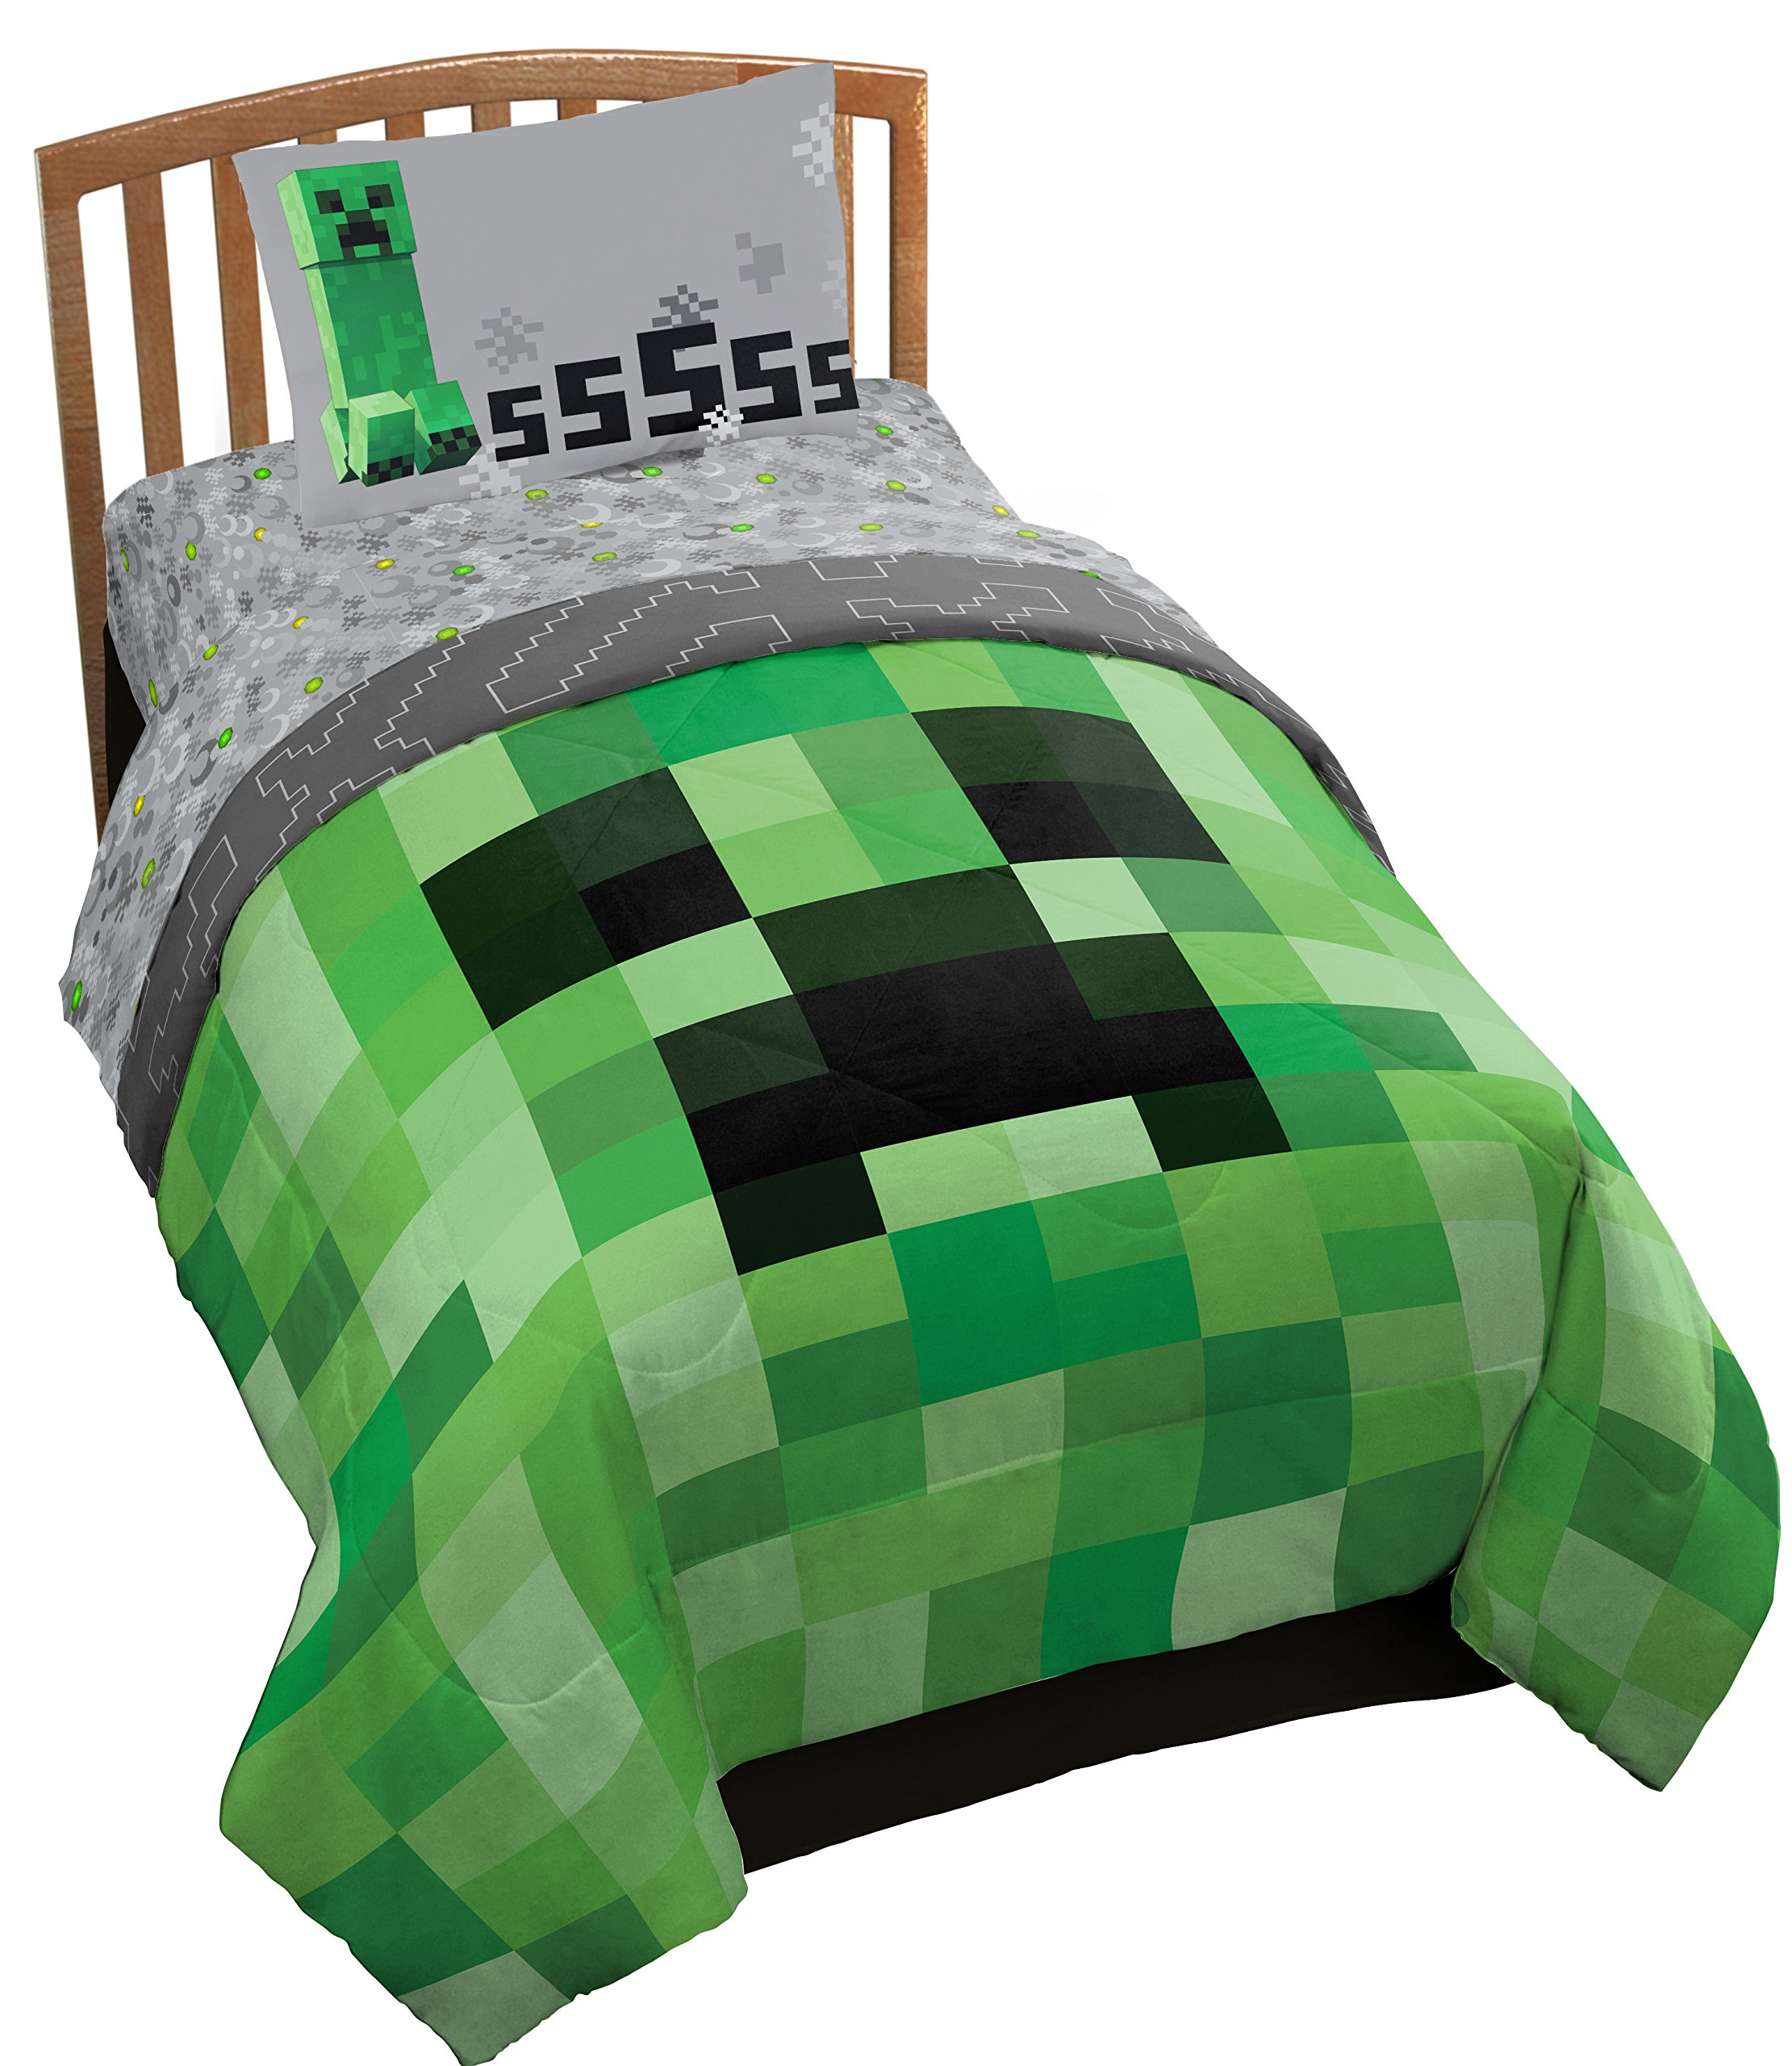 Jay Franco Minecraft Creeper 5 Piece Full Bed Set - Includes Reversible Comforter & Sheet Set - Super Soft Fade Resistant Microfiber - (Official Minecraft Product)